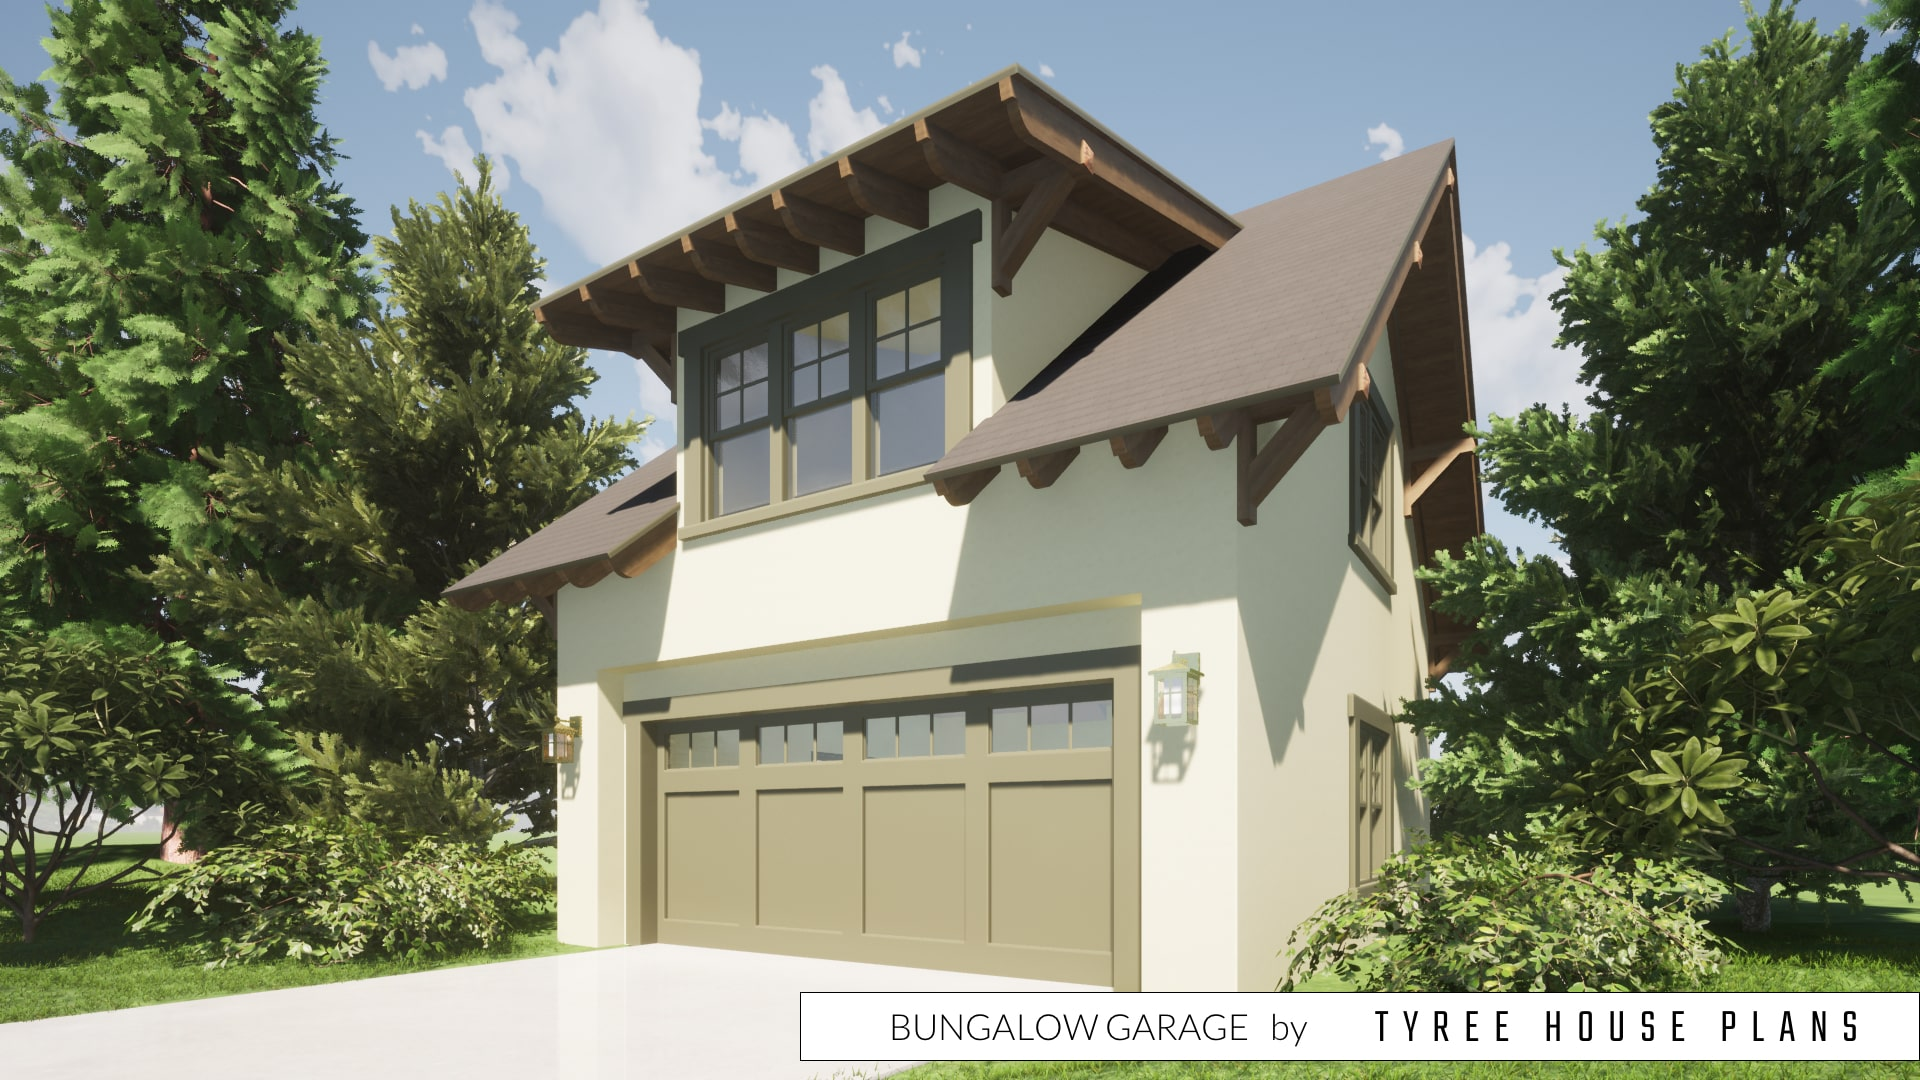 Bungalow Garage Plan by Tyree House Plans